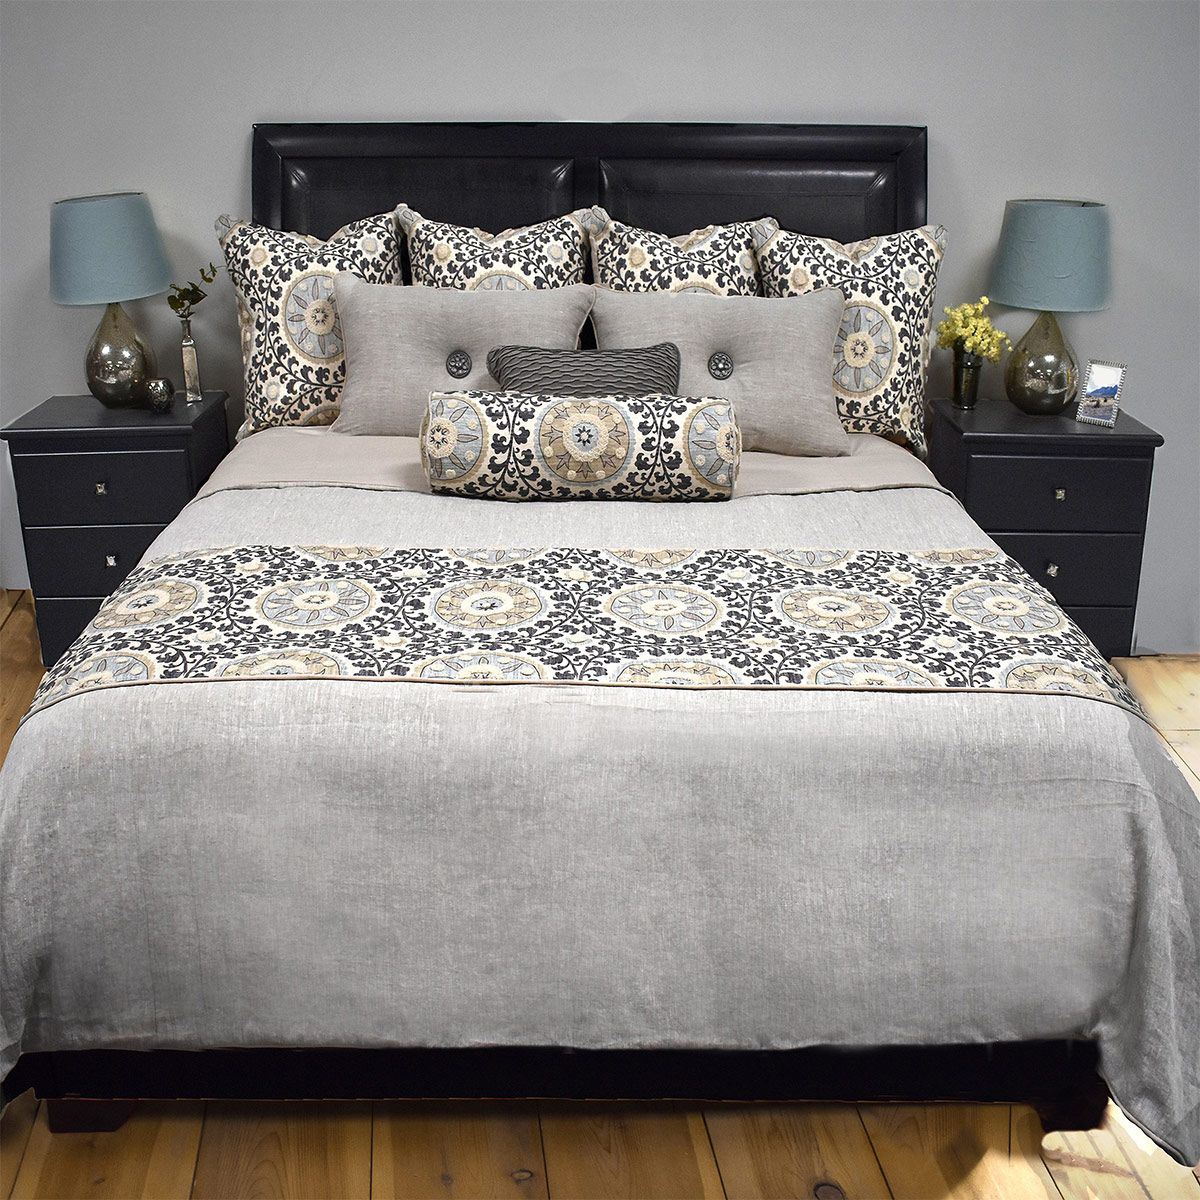 Tribal Platinum Luxury Bed Set - King